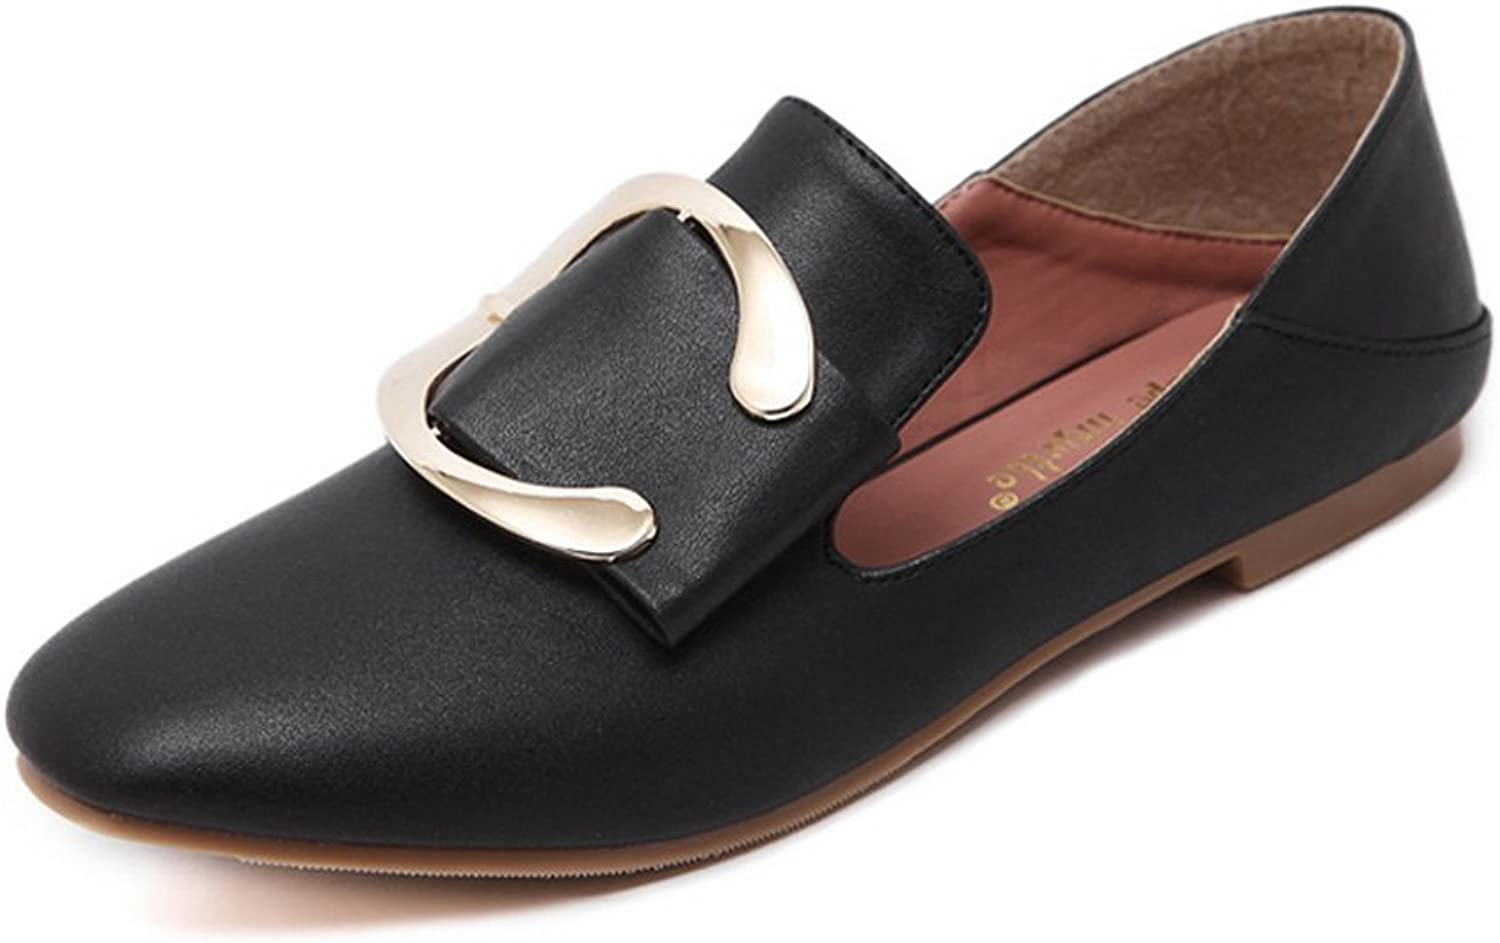 1TO9 Womens Buckle Square-Toe No-Closure Black Urethane Flats shoes - 5 B(M) US